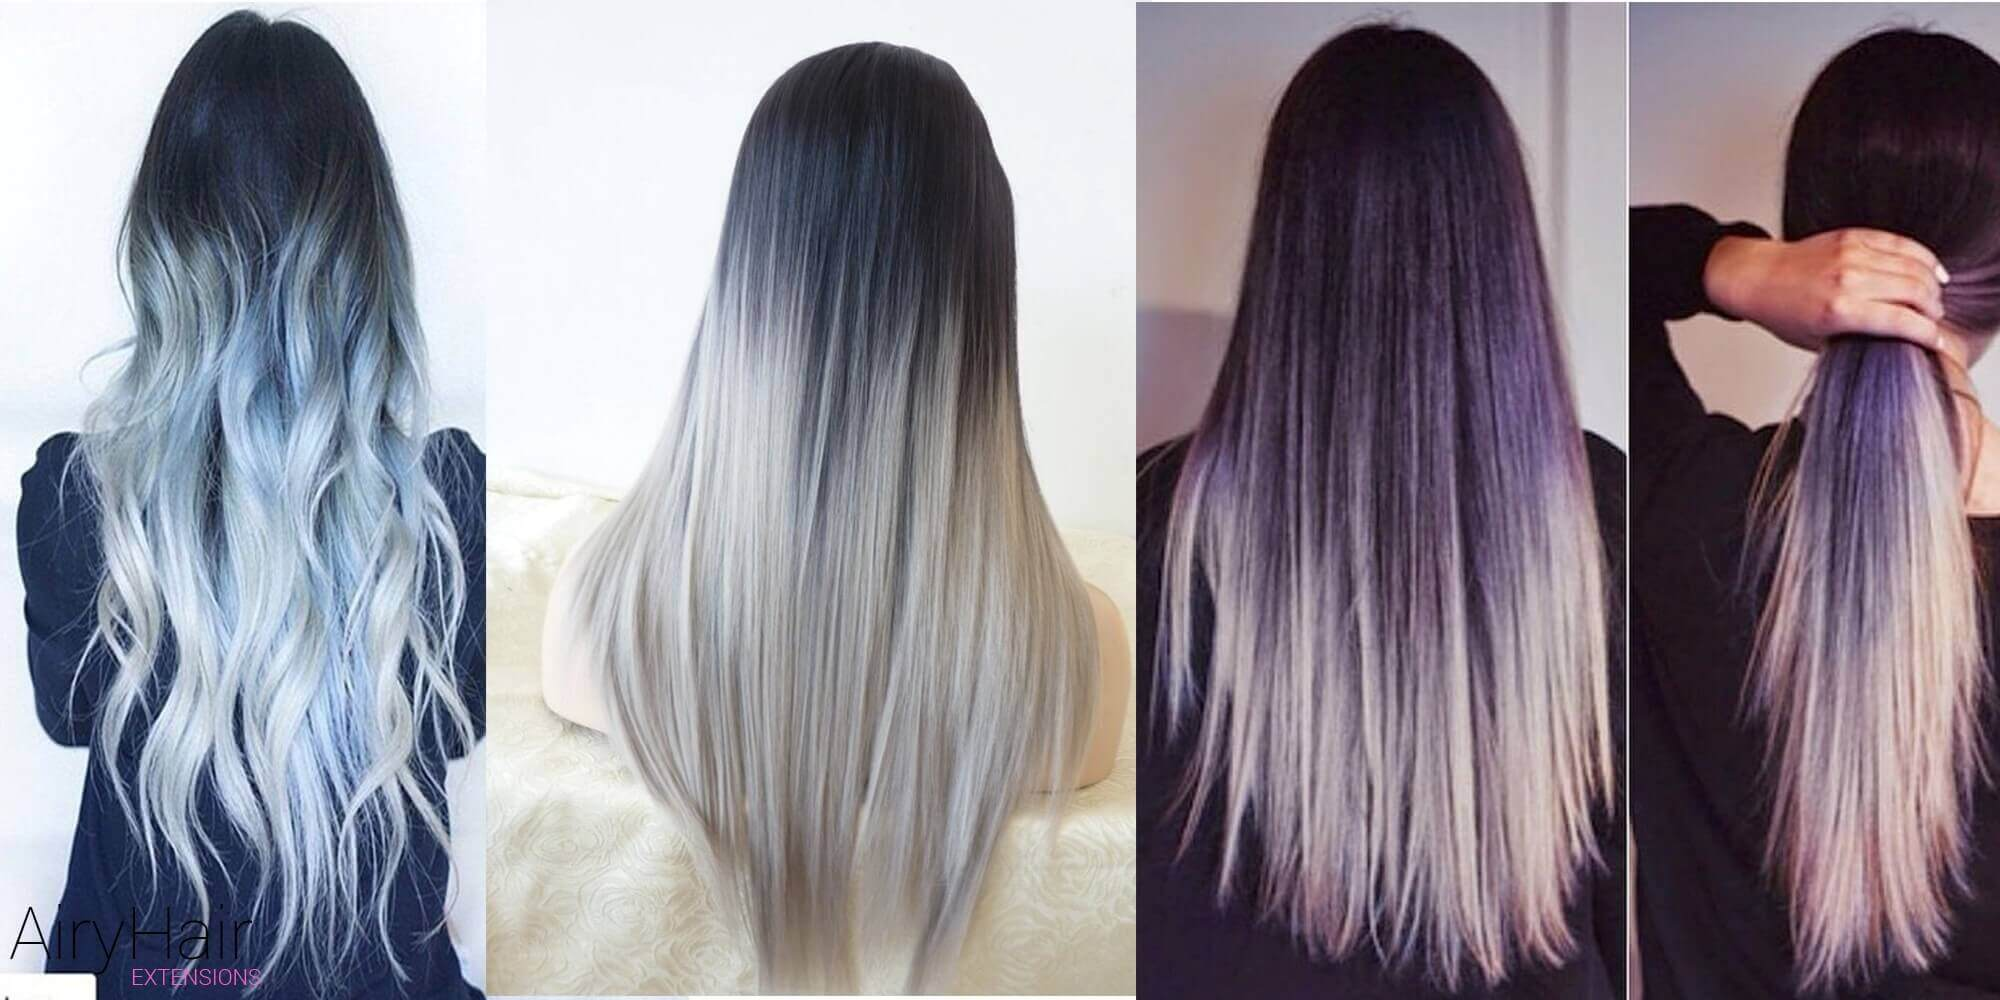 20 Thrilling Ombr And Balayage Hair Extension Ideas